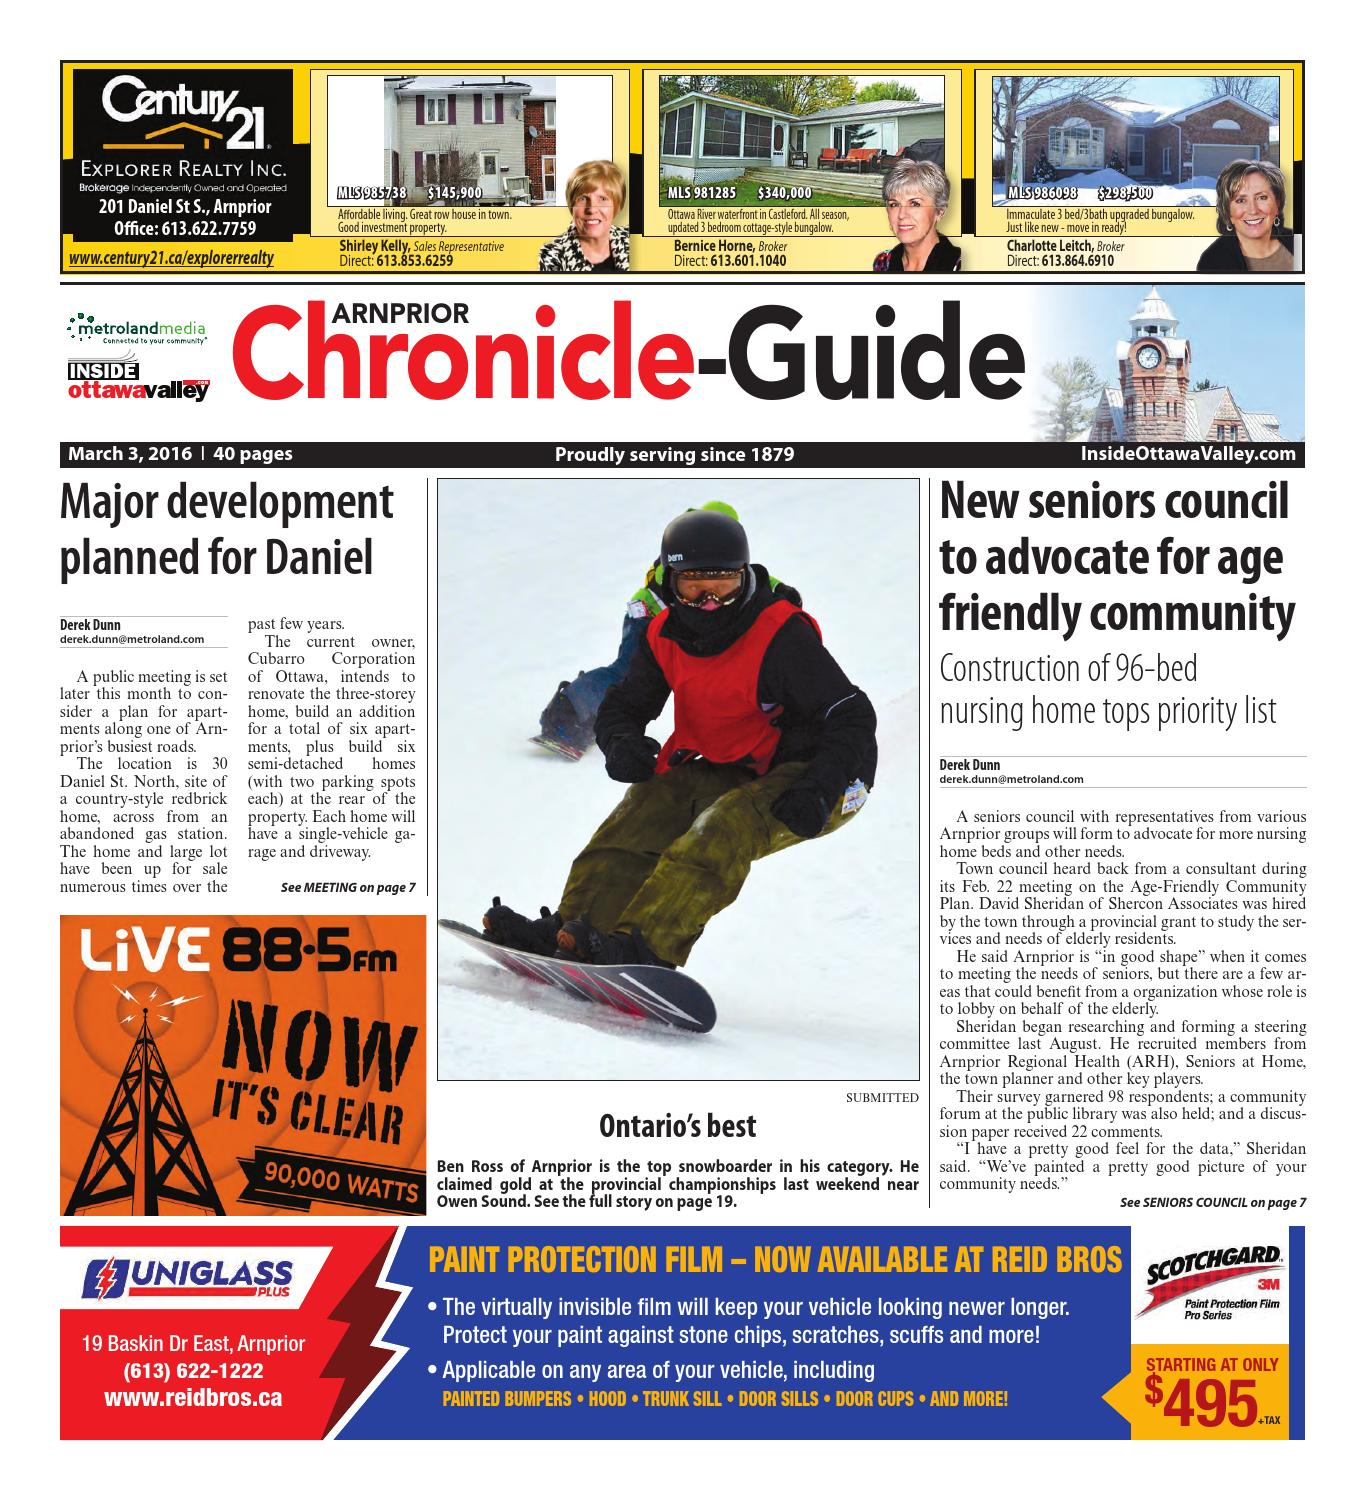 Arnprior030316 by Metroland East - Arnprior Chronicle-Guide - issuu d2db8bcf0f20